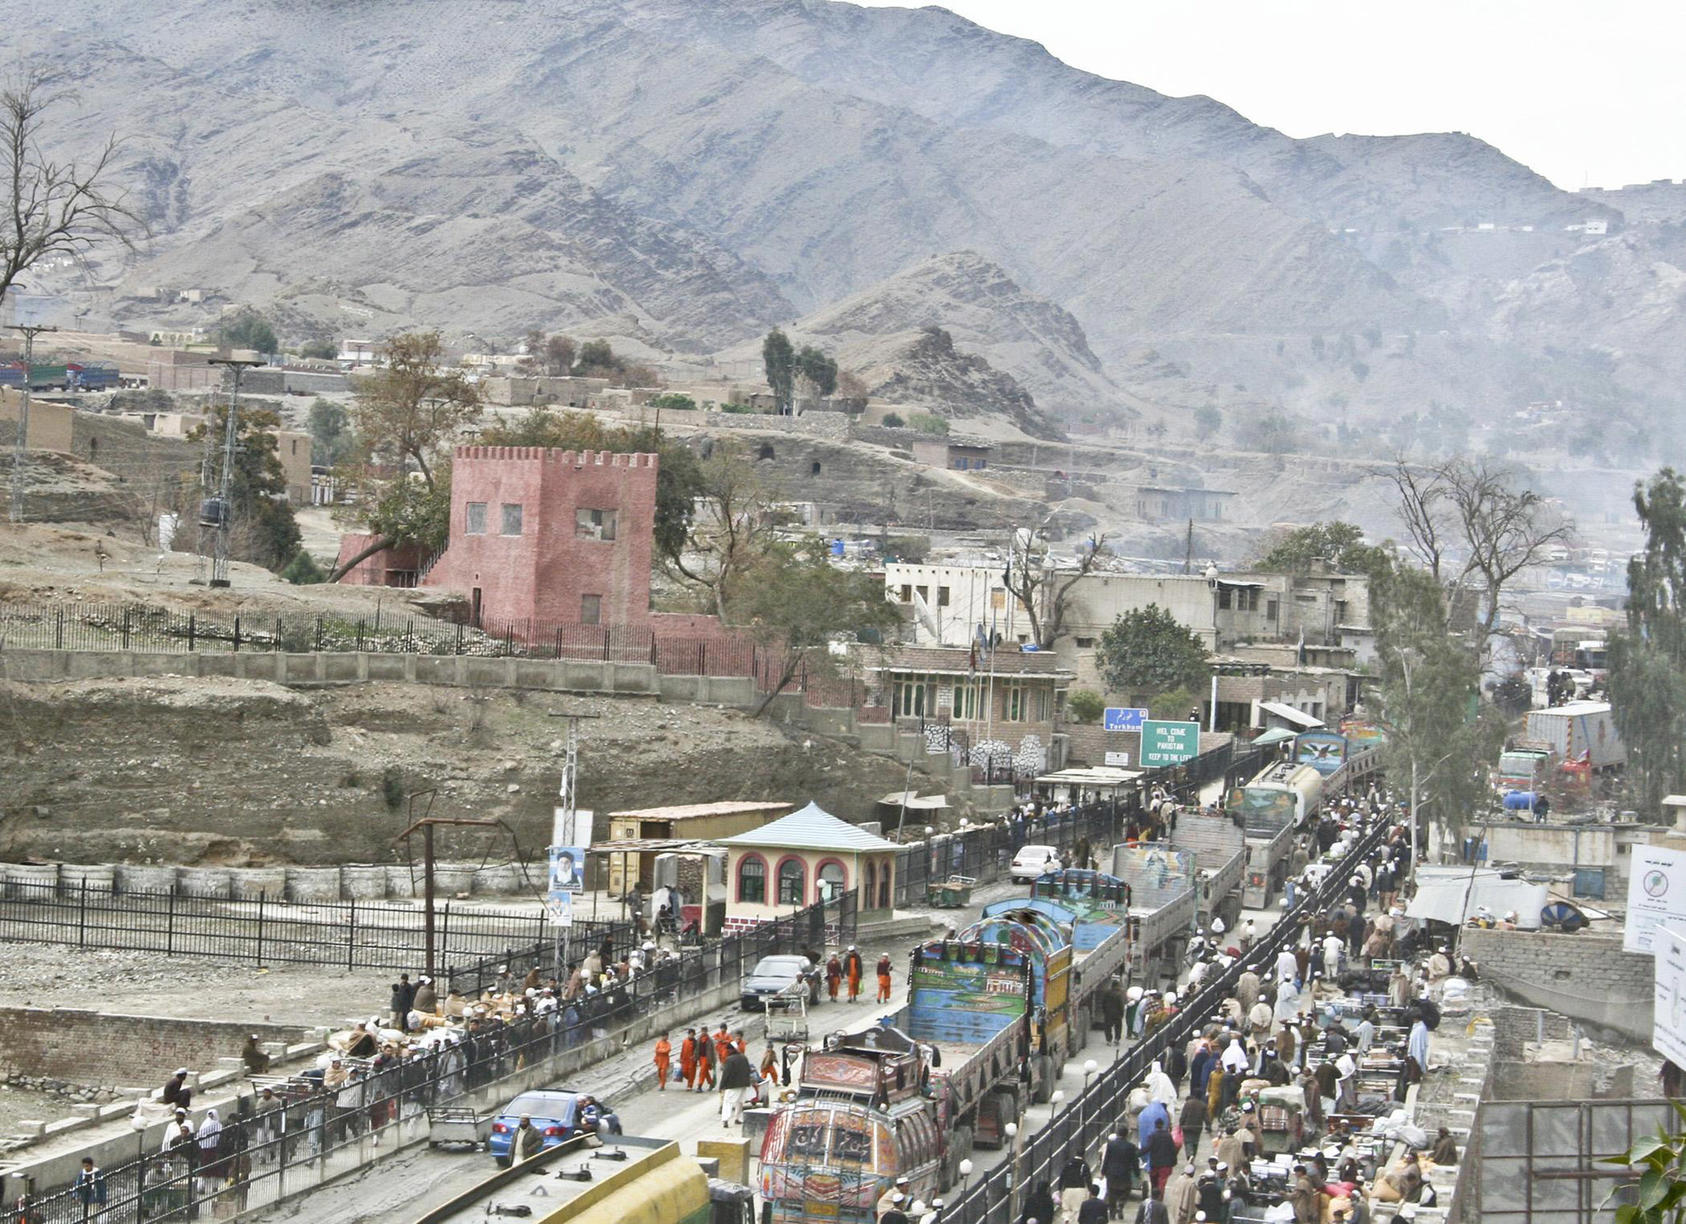 Trucks, traders and travelers cross between Afghanistan and Pakistan at Torkham, in the Khyber Pass, the country's busiest border crossing. Customs duties are a major source of the nation's revenue. (Ryan Matson/U.S. Army)